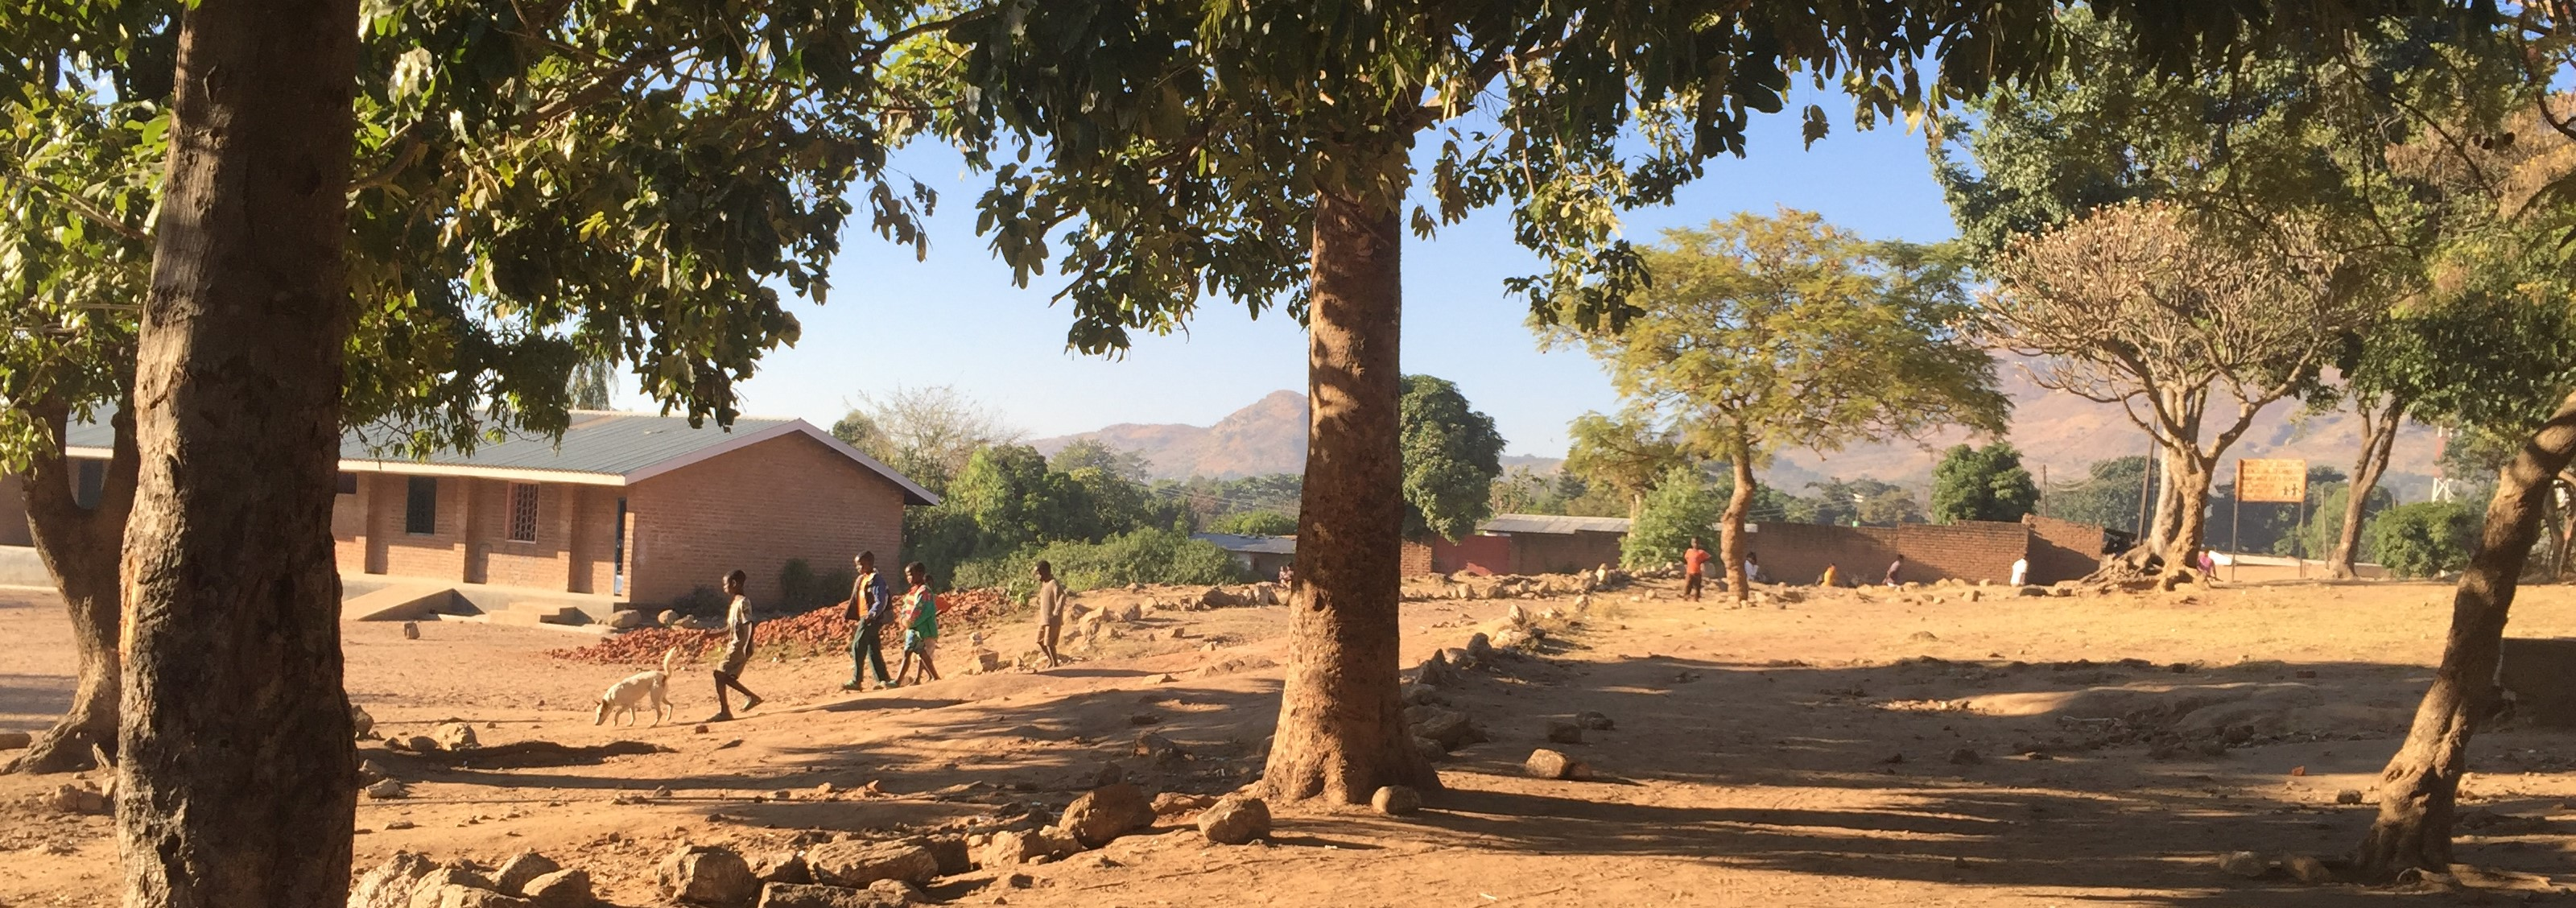 Village seen through trees, with children walking down a small hill with a dog